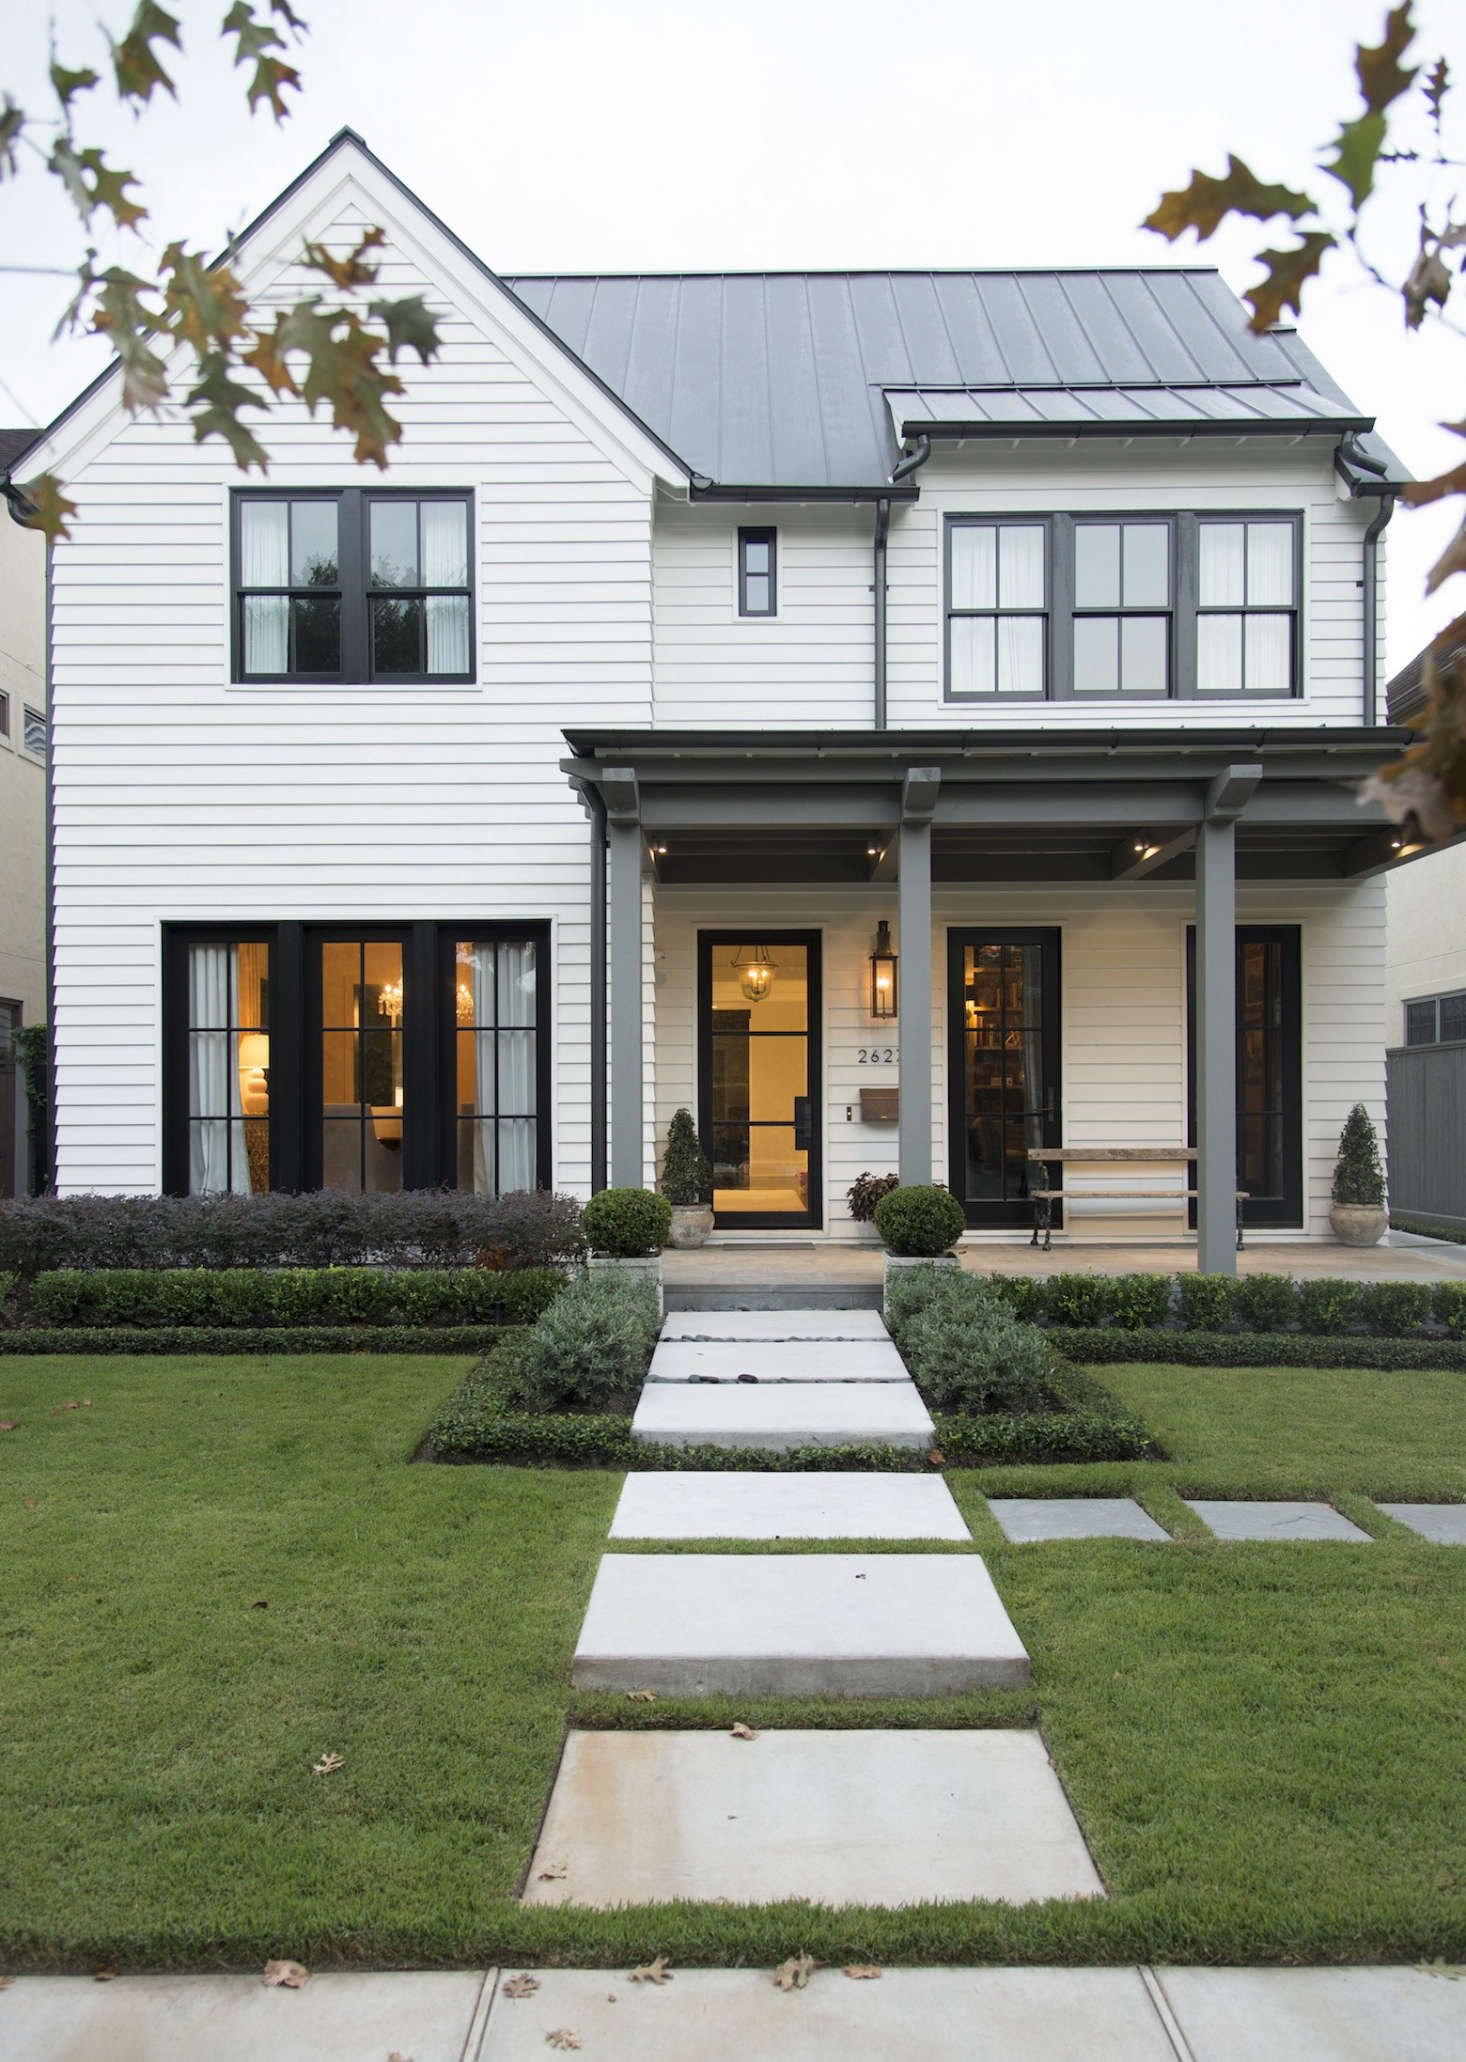 A Curb Appeal finalist in our2017 Considered Design Awards, theGranberry Residence in Houston, Texas, seamlessly integrates elements of classic farmhouse architecture with contemporary styling. Photograph by Megan Lovoi.